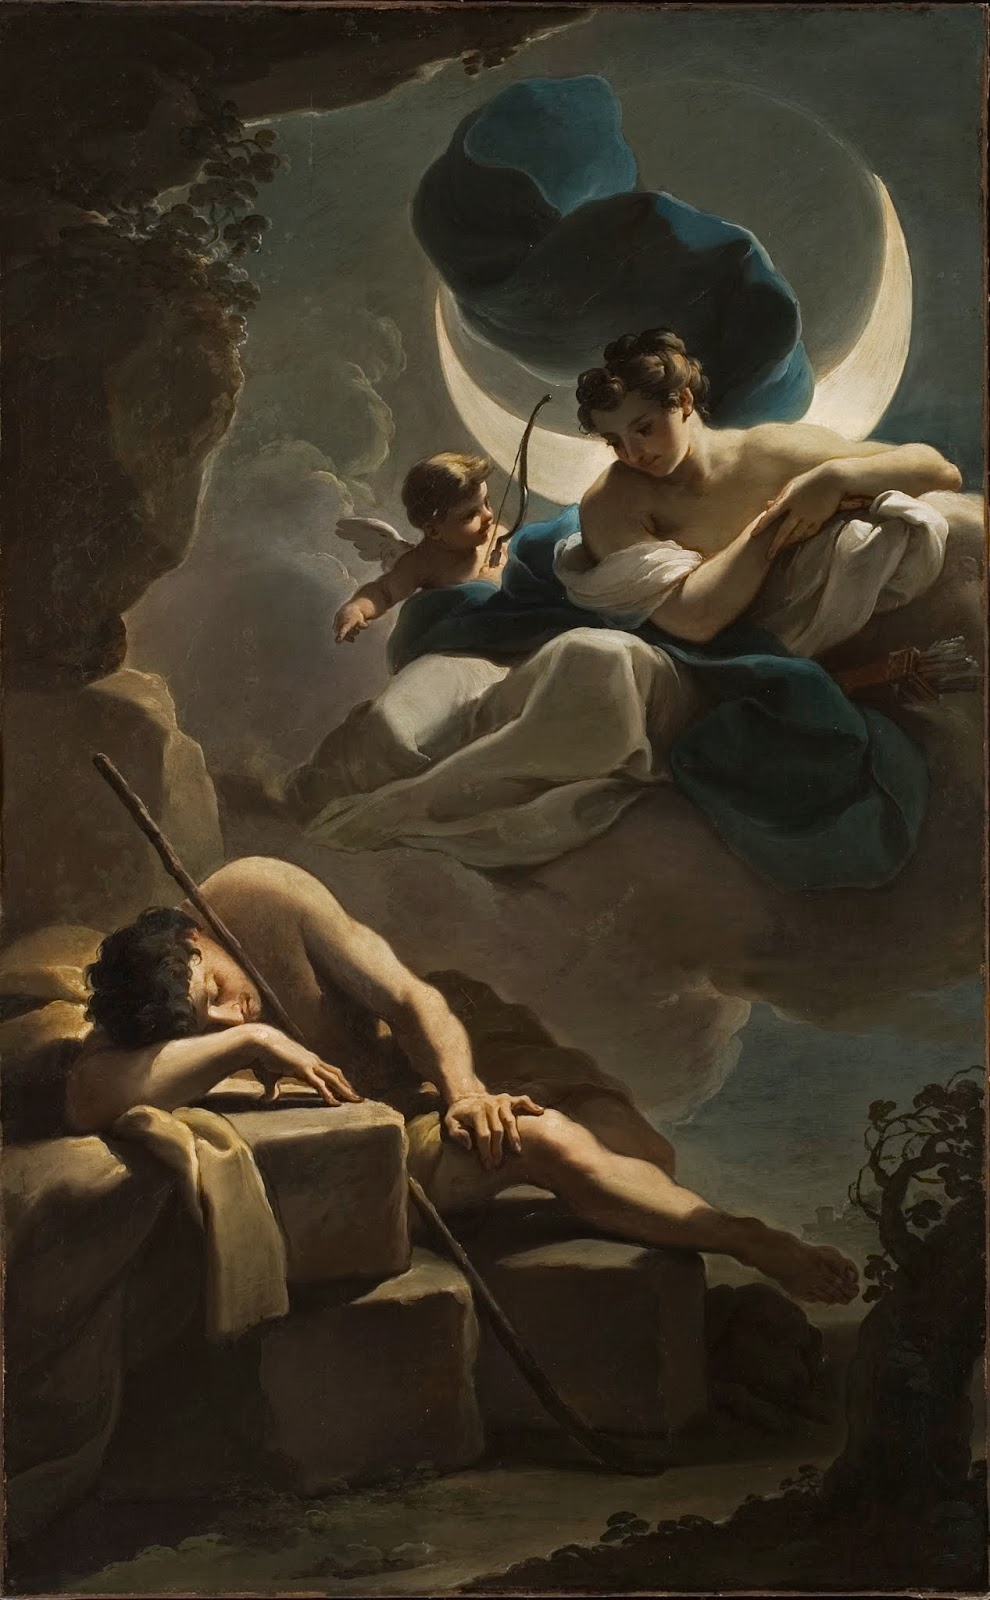 Selene_and_Endymion_by_Ubaldo_Gandolfi